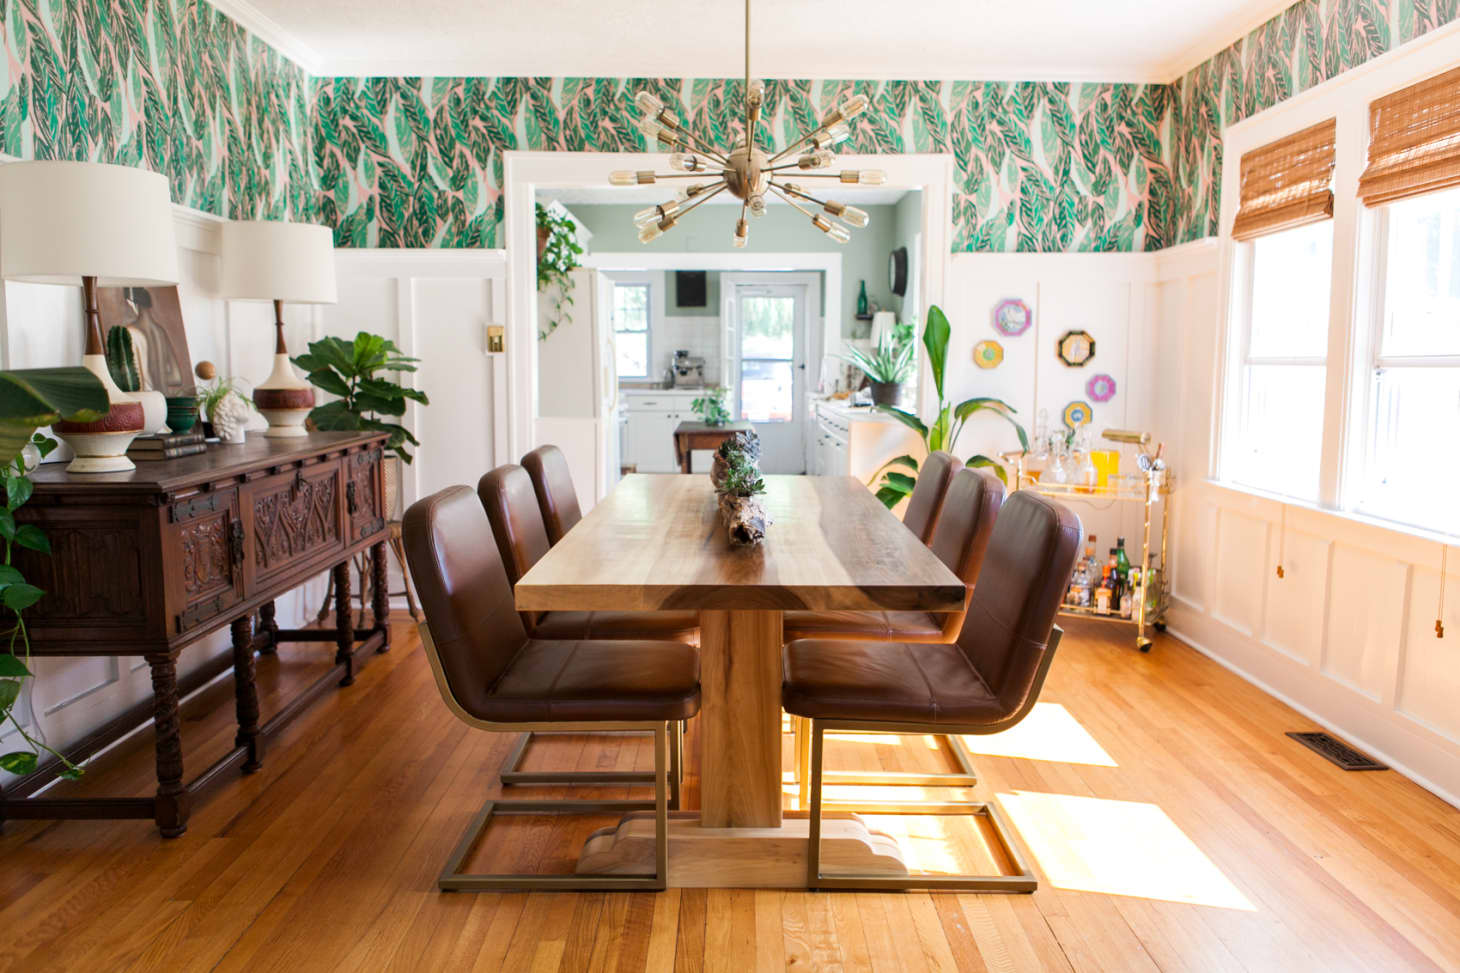 8 Trends Designers Wish Would Make a Comeback   Apartment